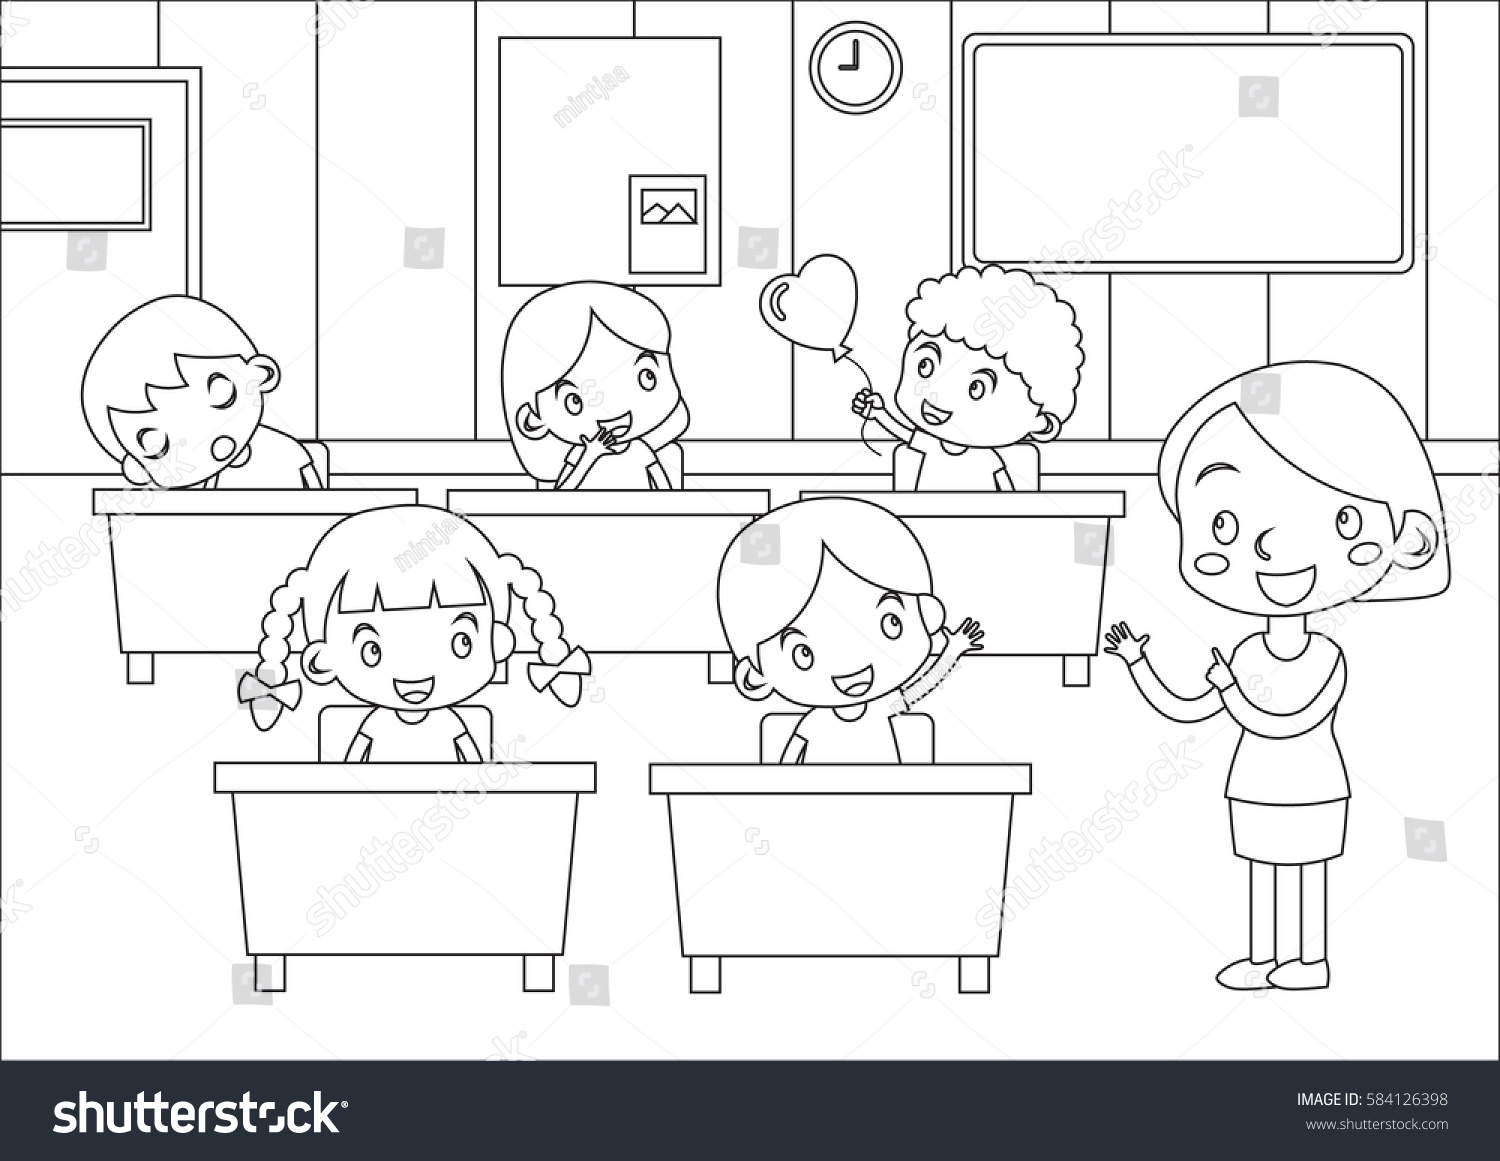 Coloring Page Funny Kids Students Teacher Stock Vector (Royalty Free ...